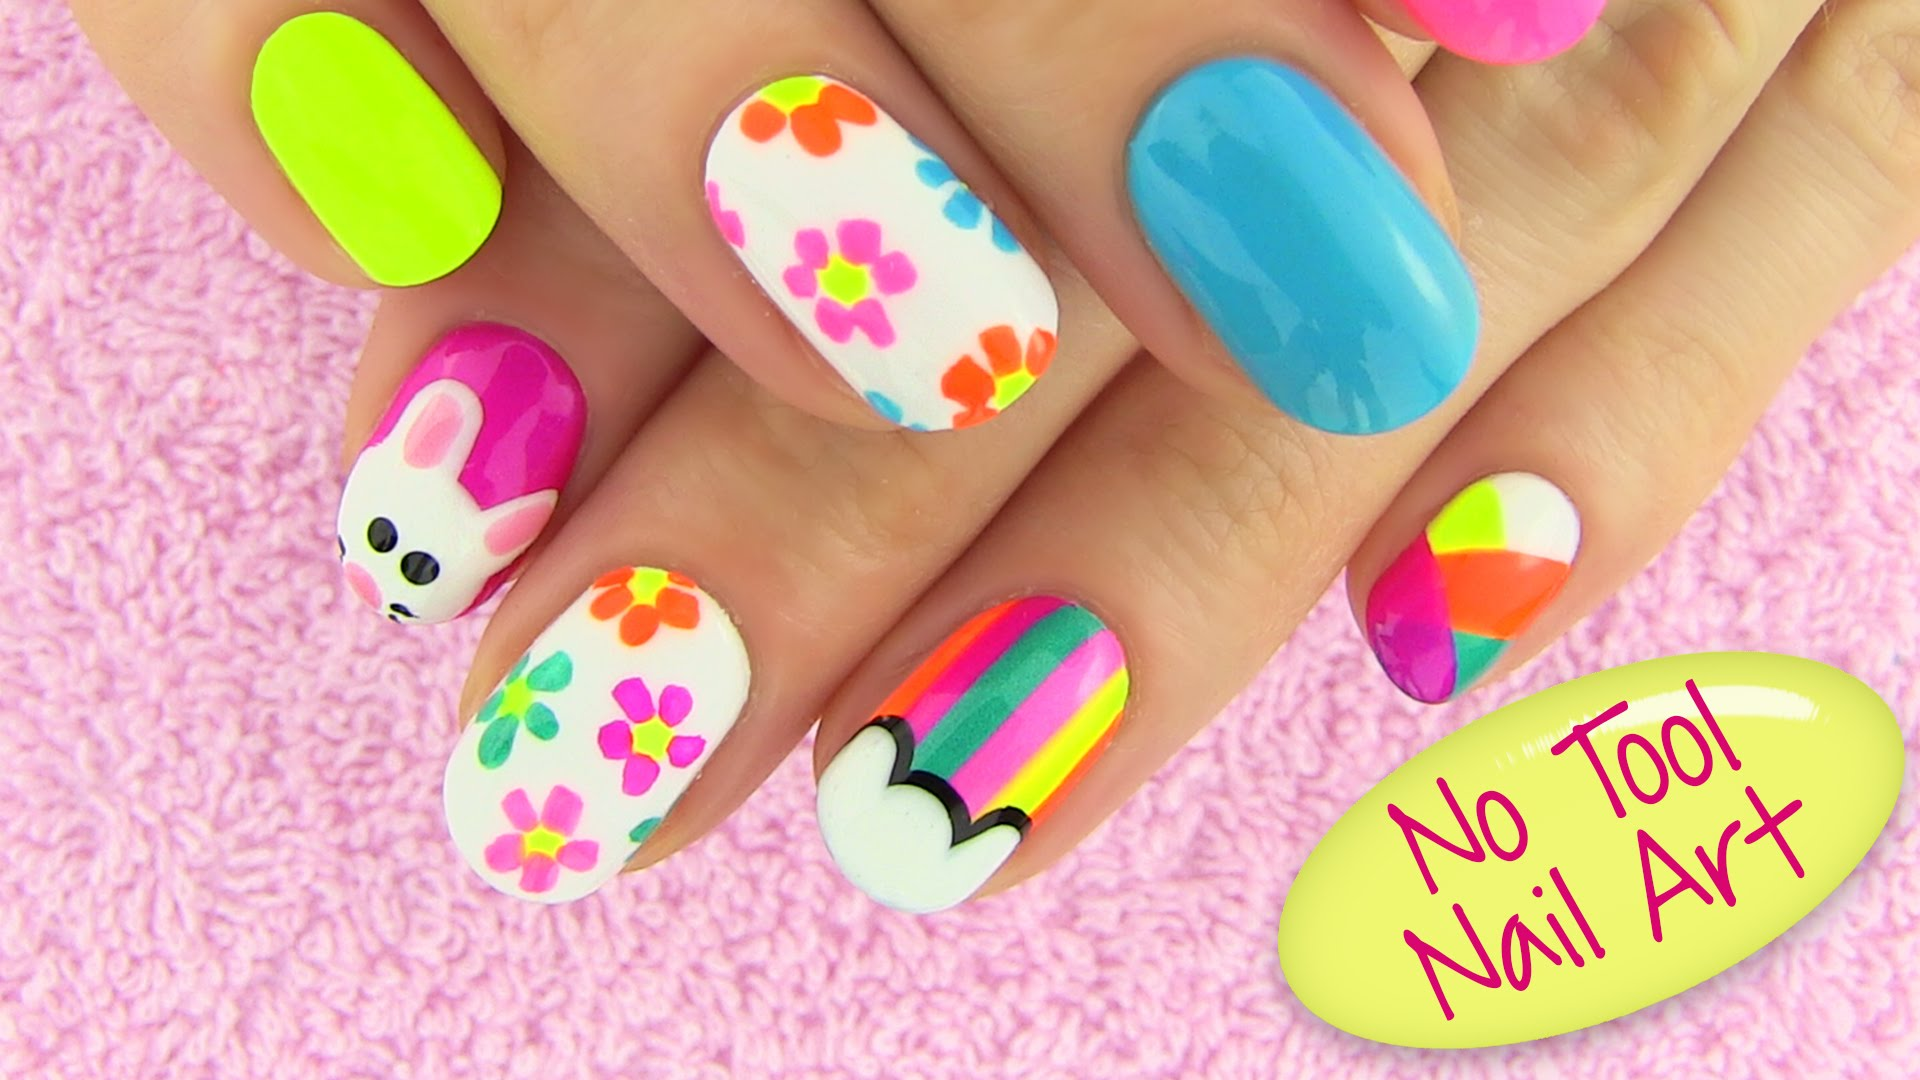 14 At Home Step By Step Nail Art Designs Without Tools Images